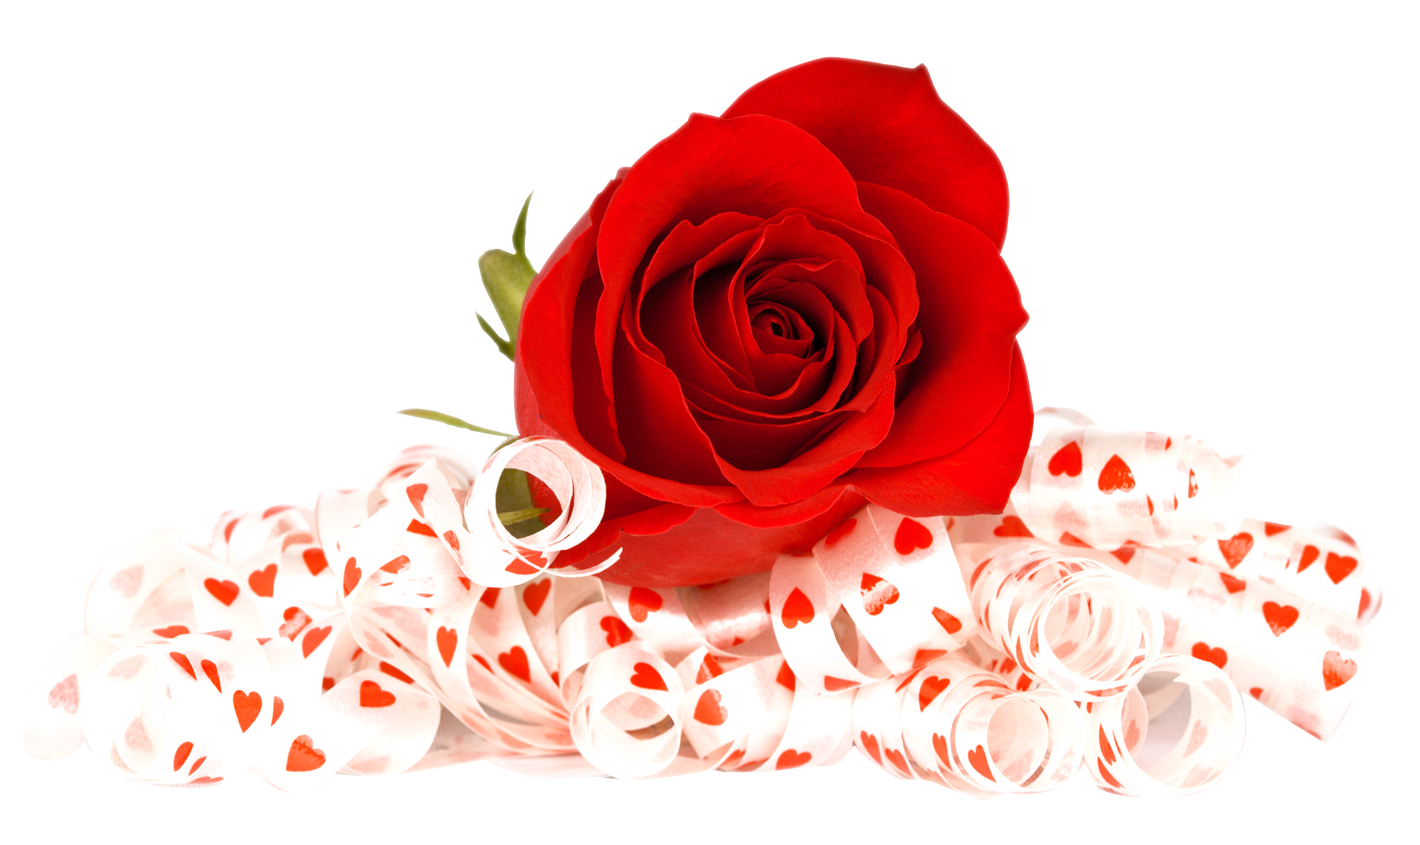 Red rose flower png. Image purepng free transparent